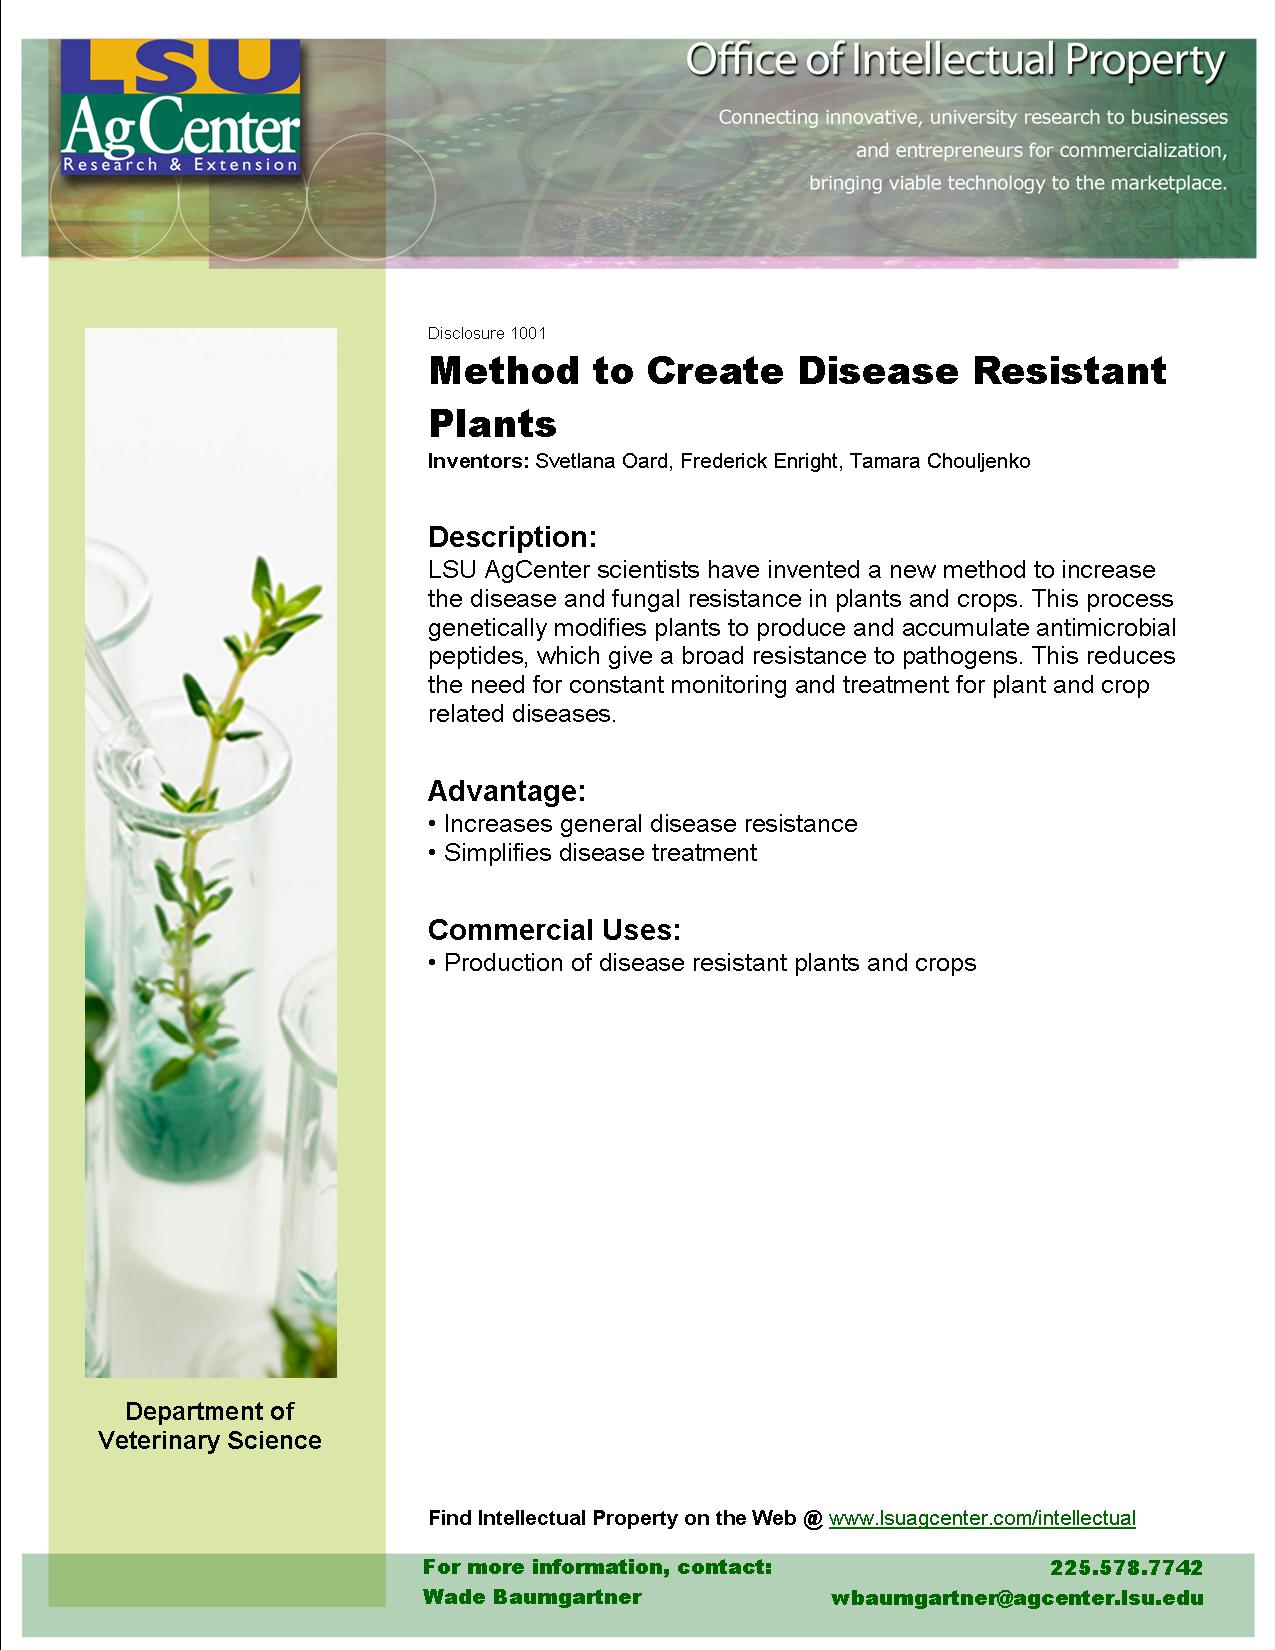 Method to Create Disease-resistant Plants